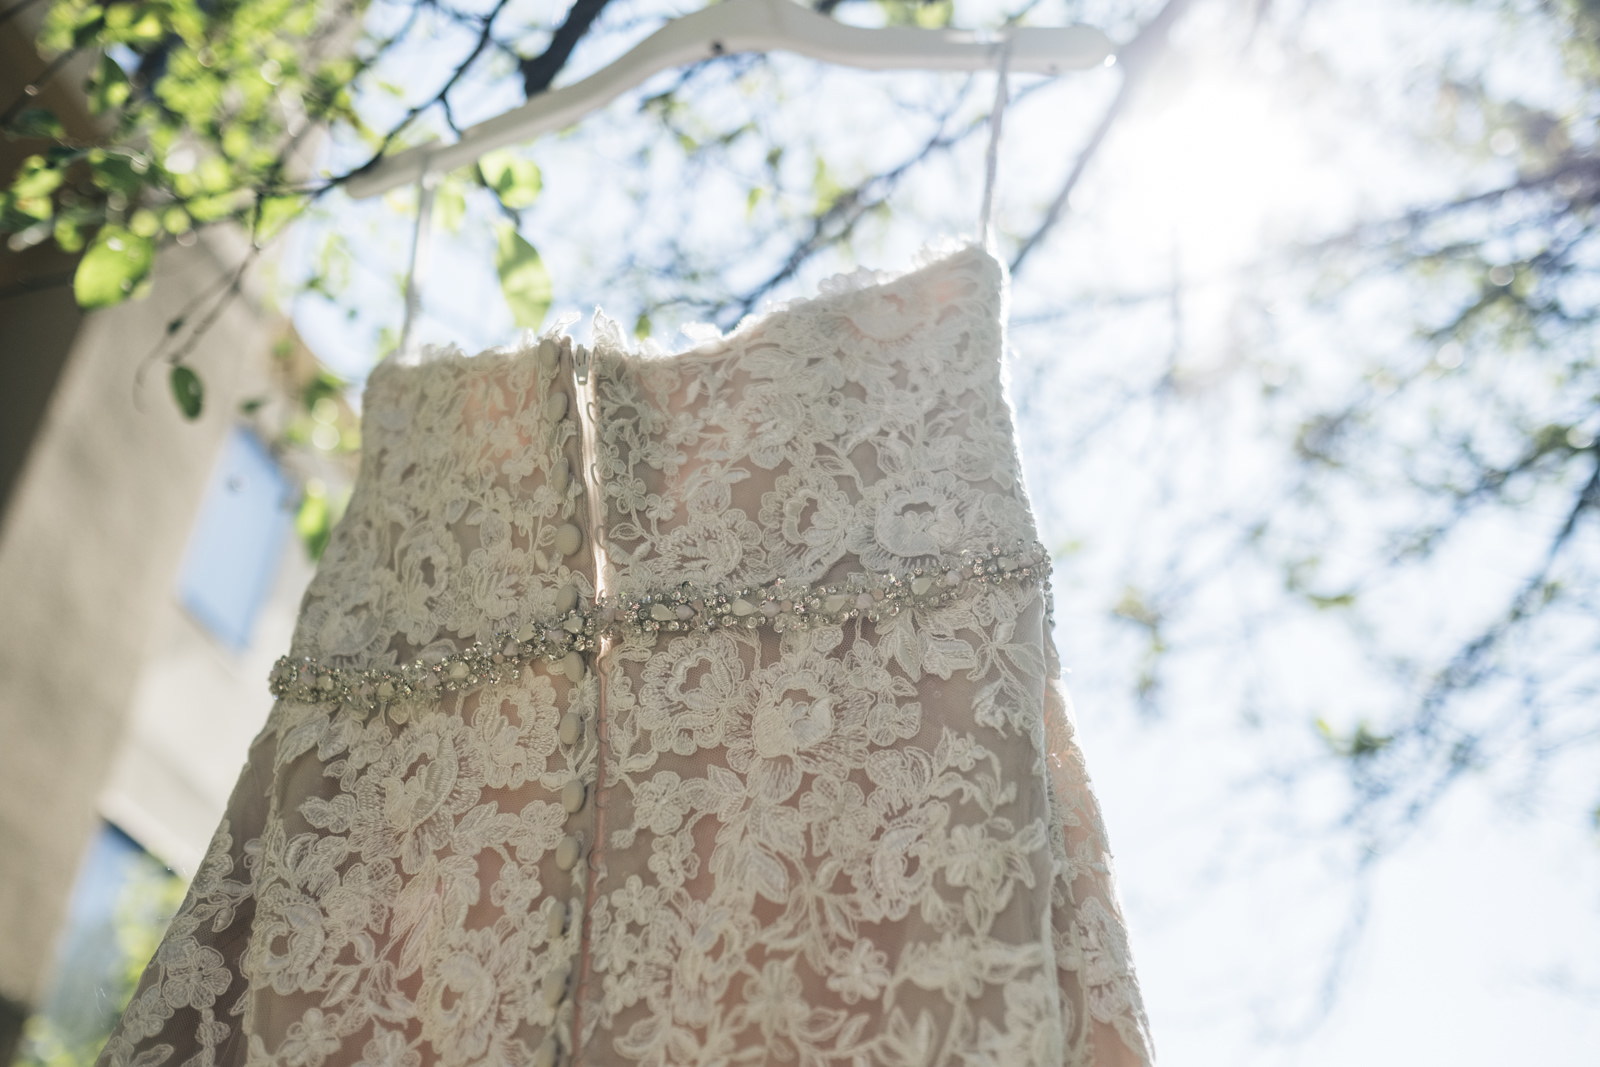 A dress hangs off a tree before the wedding ceremony in the garden at Toledo, Ohio hotel